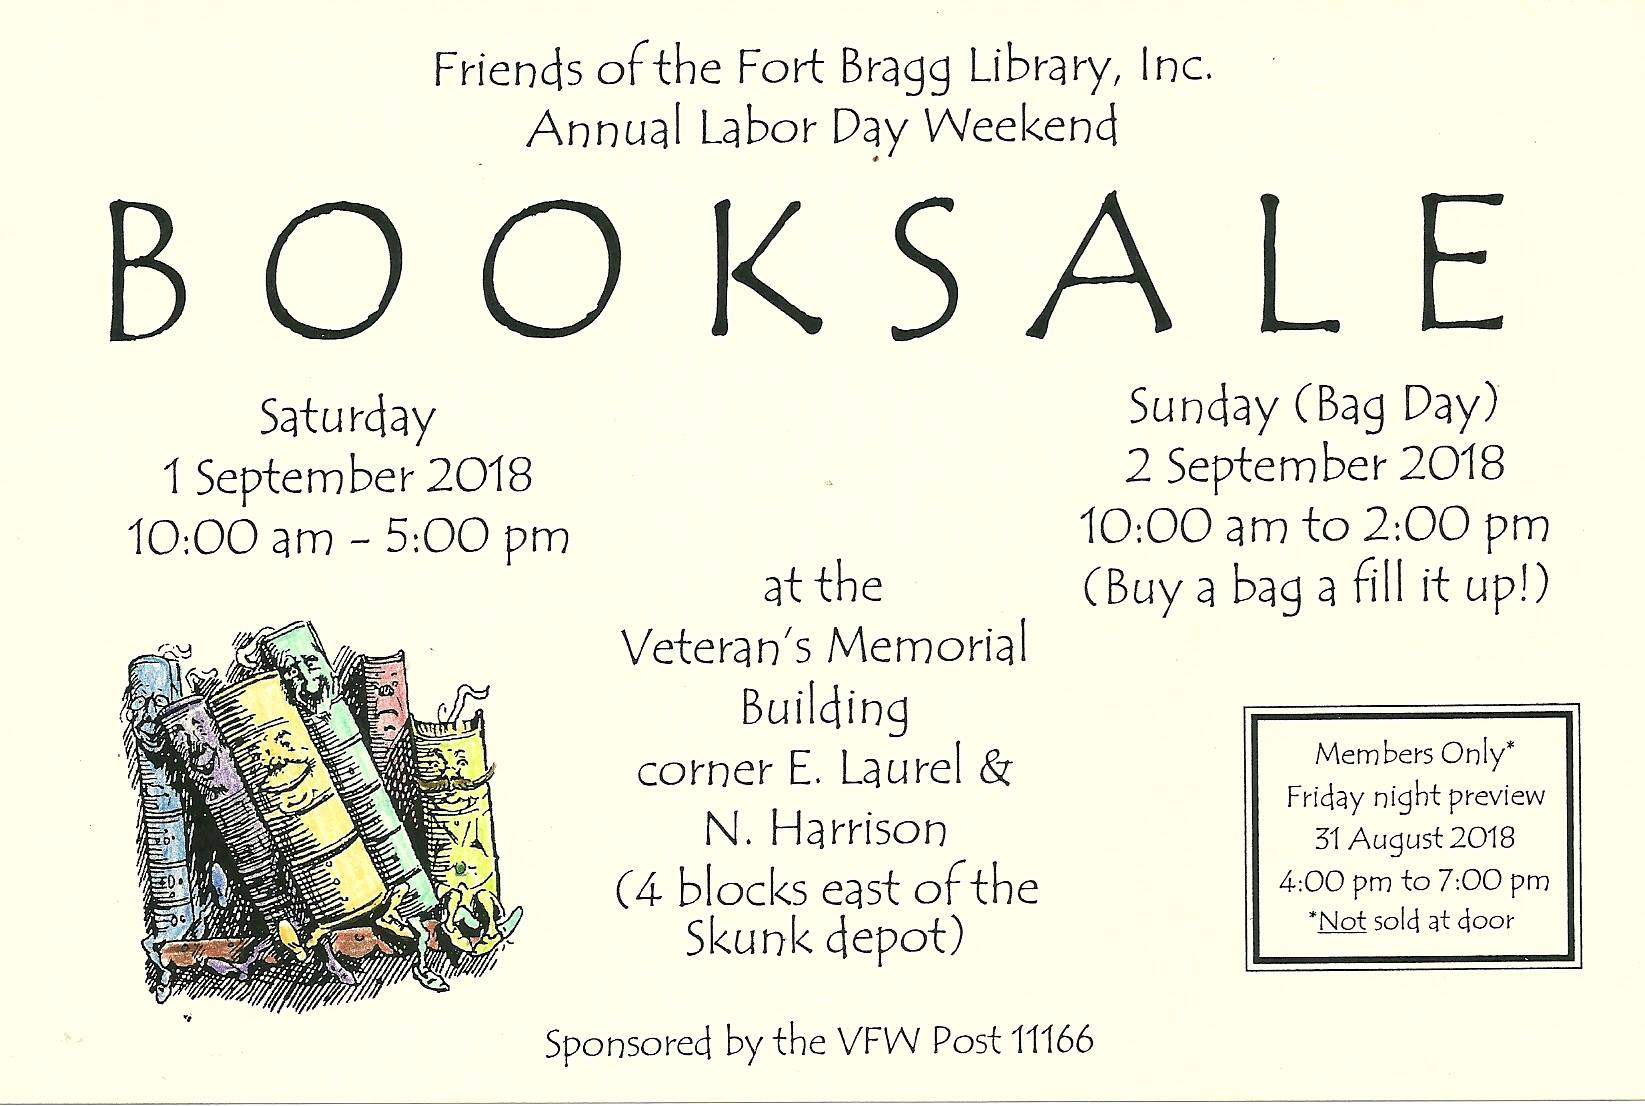 Labor Day Weekend Book Sale